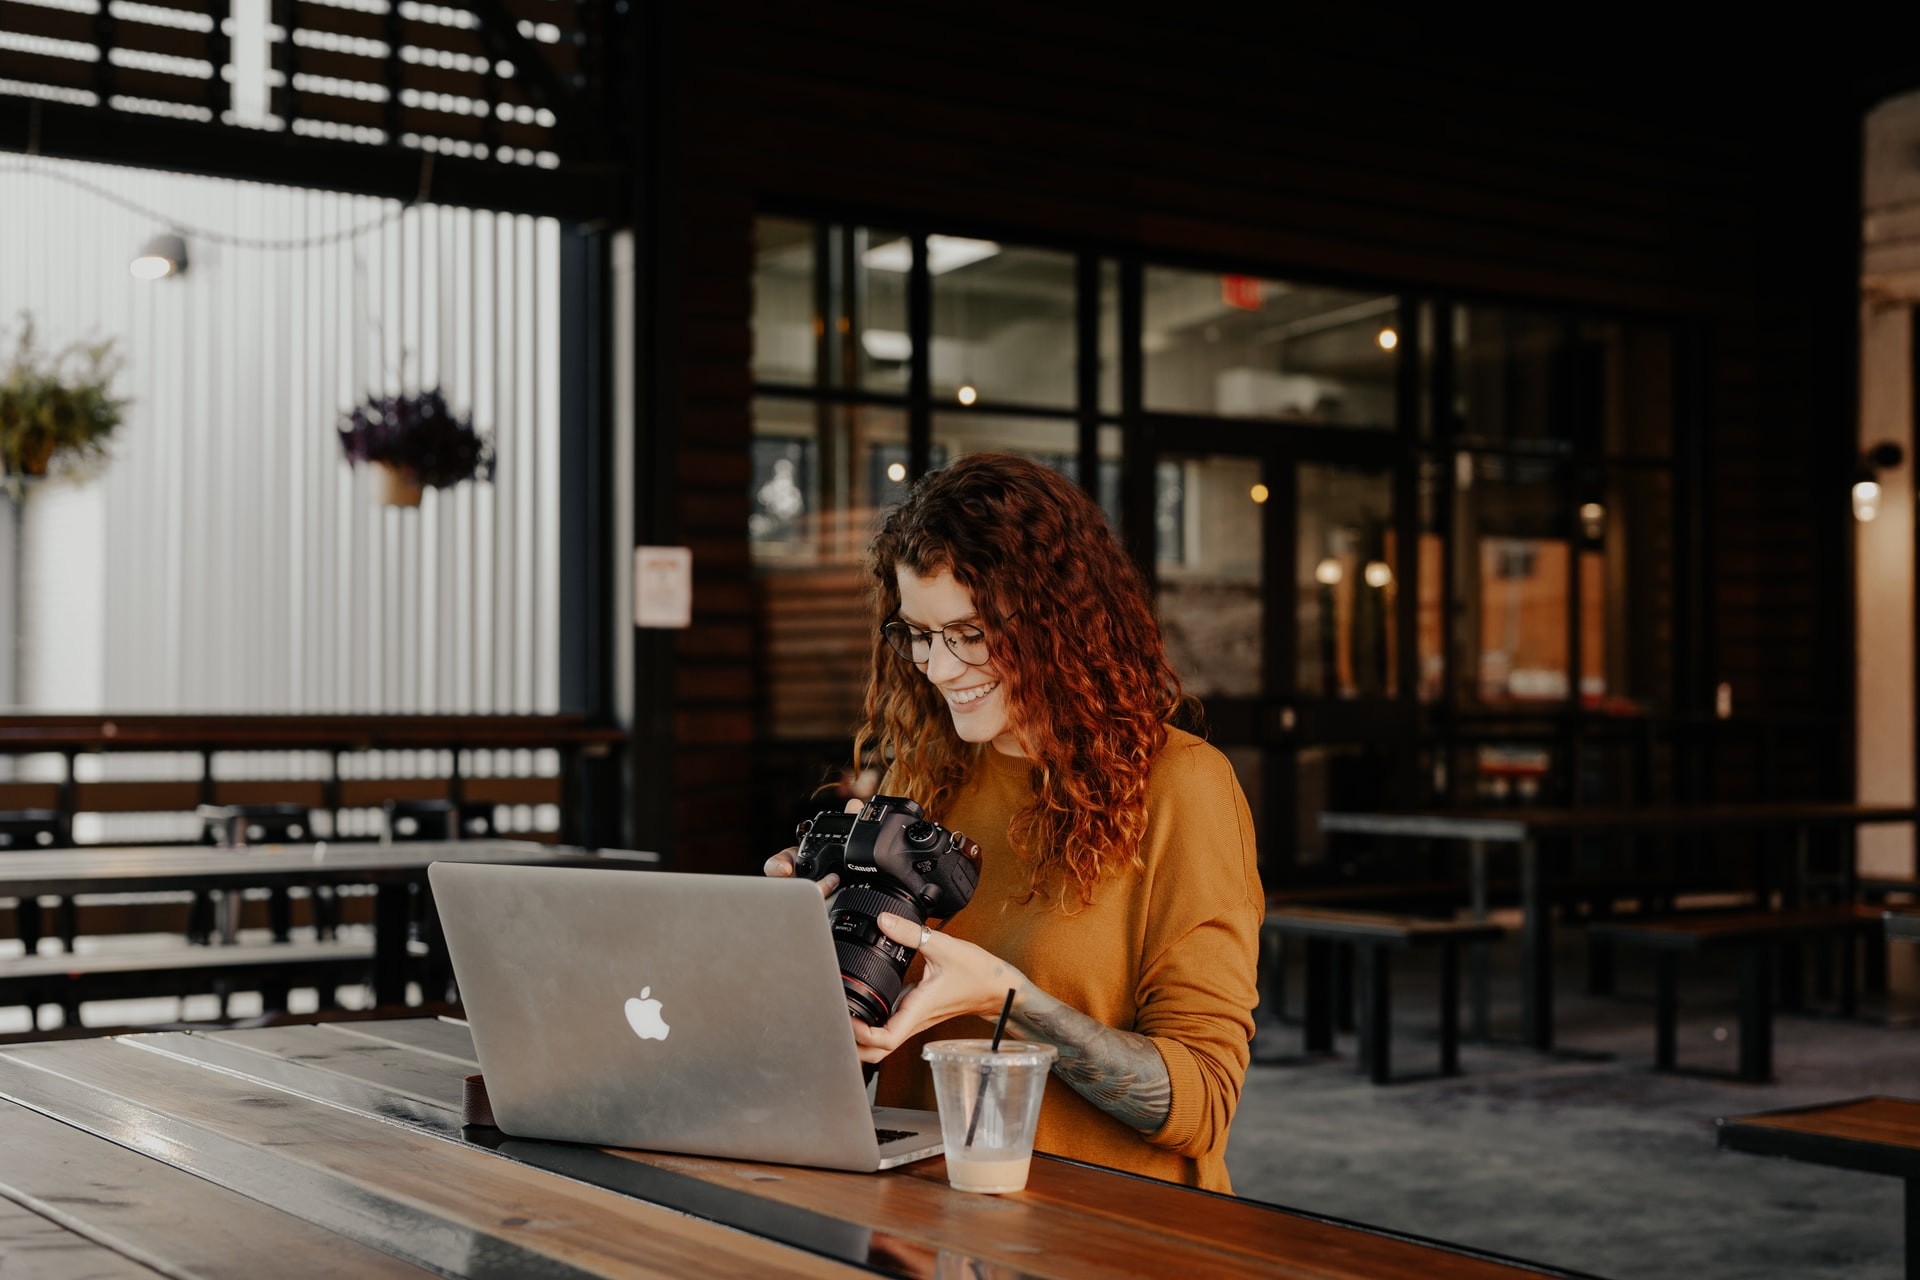 red-haired person with glasses, tattoos and orange top sits at her mac, holding a DSLR camera, photography blogger